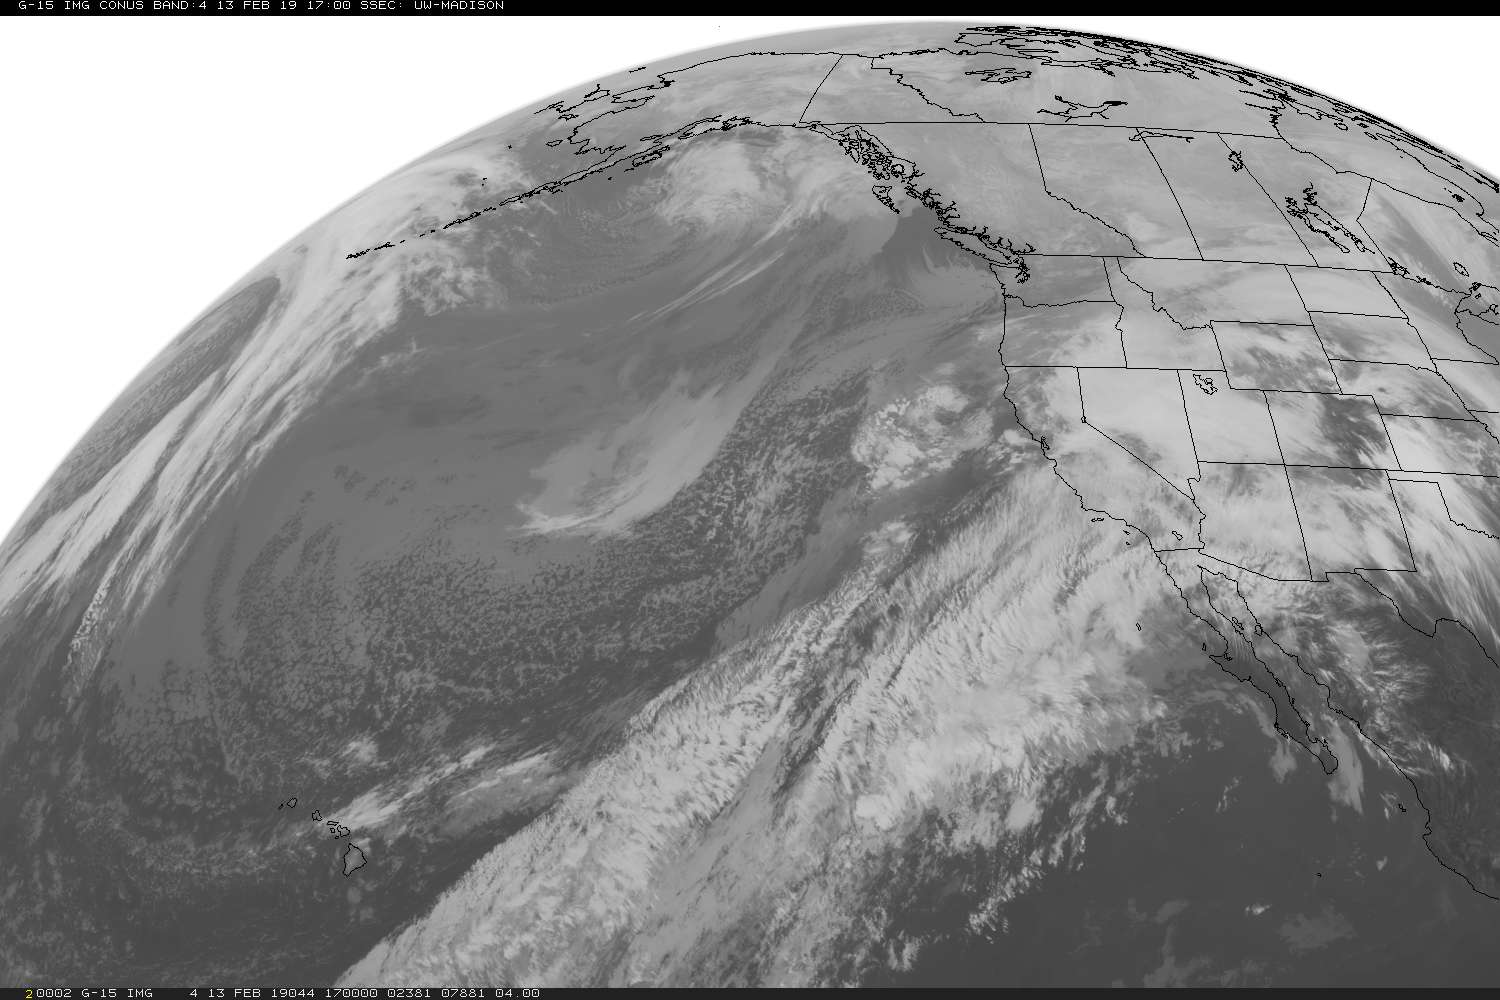 Most recent Geostationary Operational Environmental Satellite (GOES) image of the Western United States